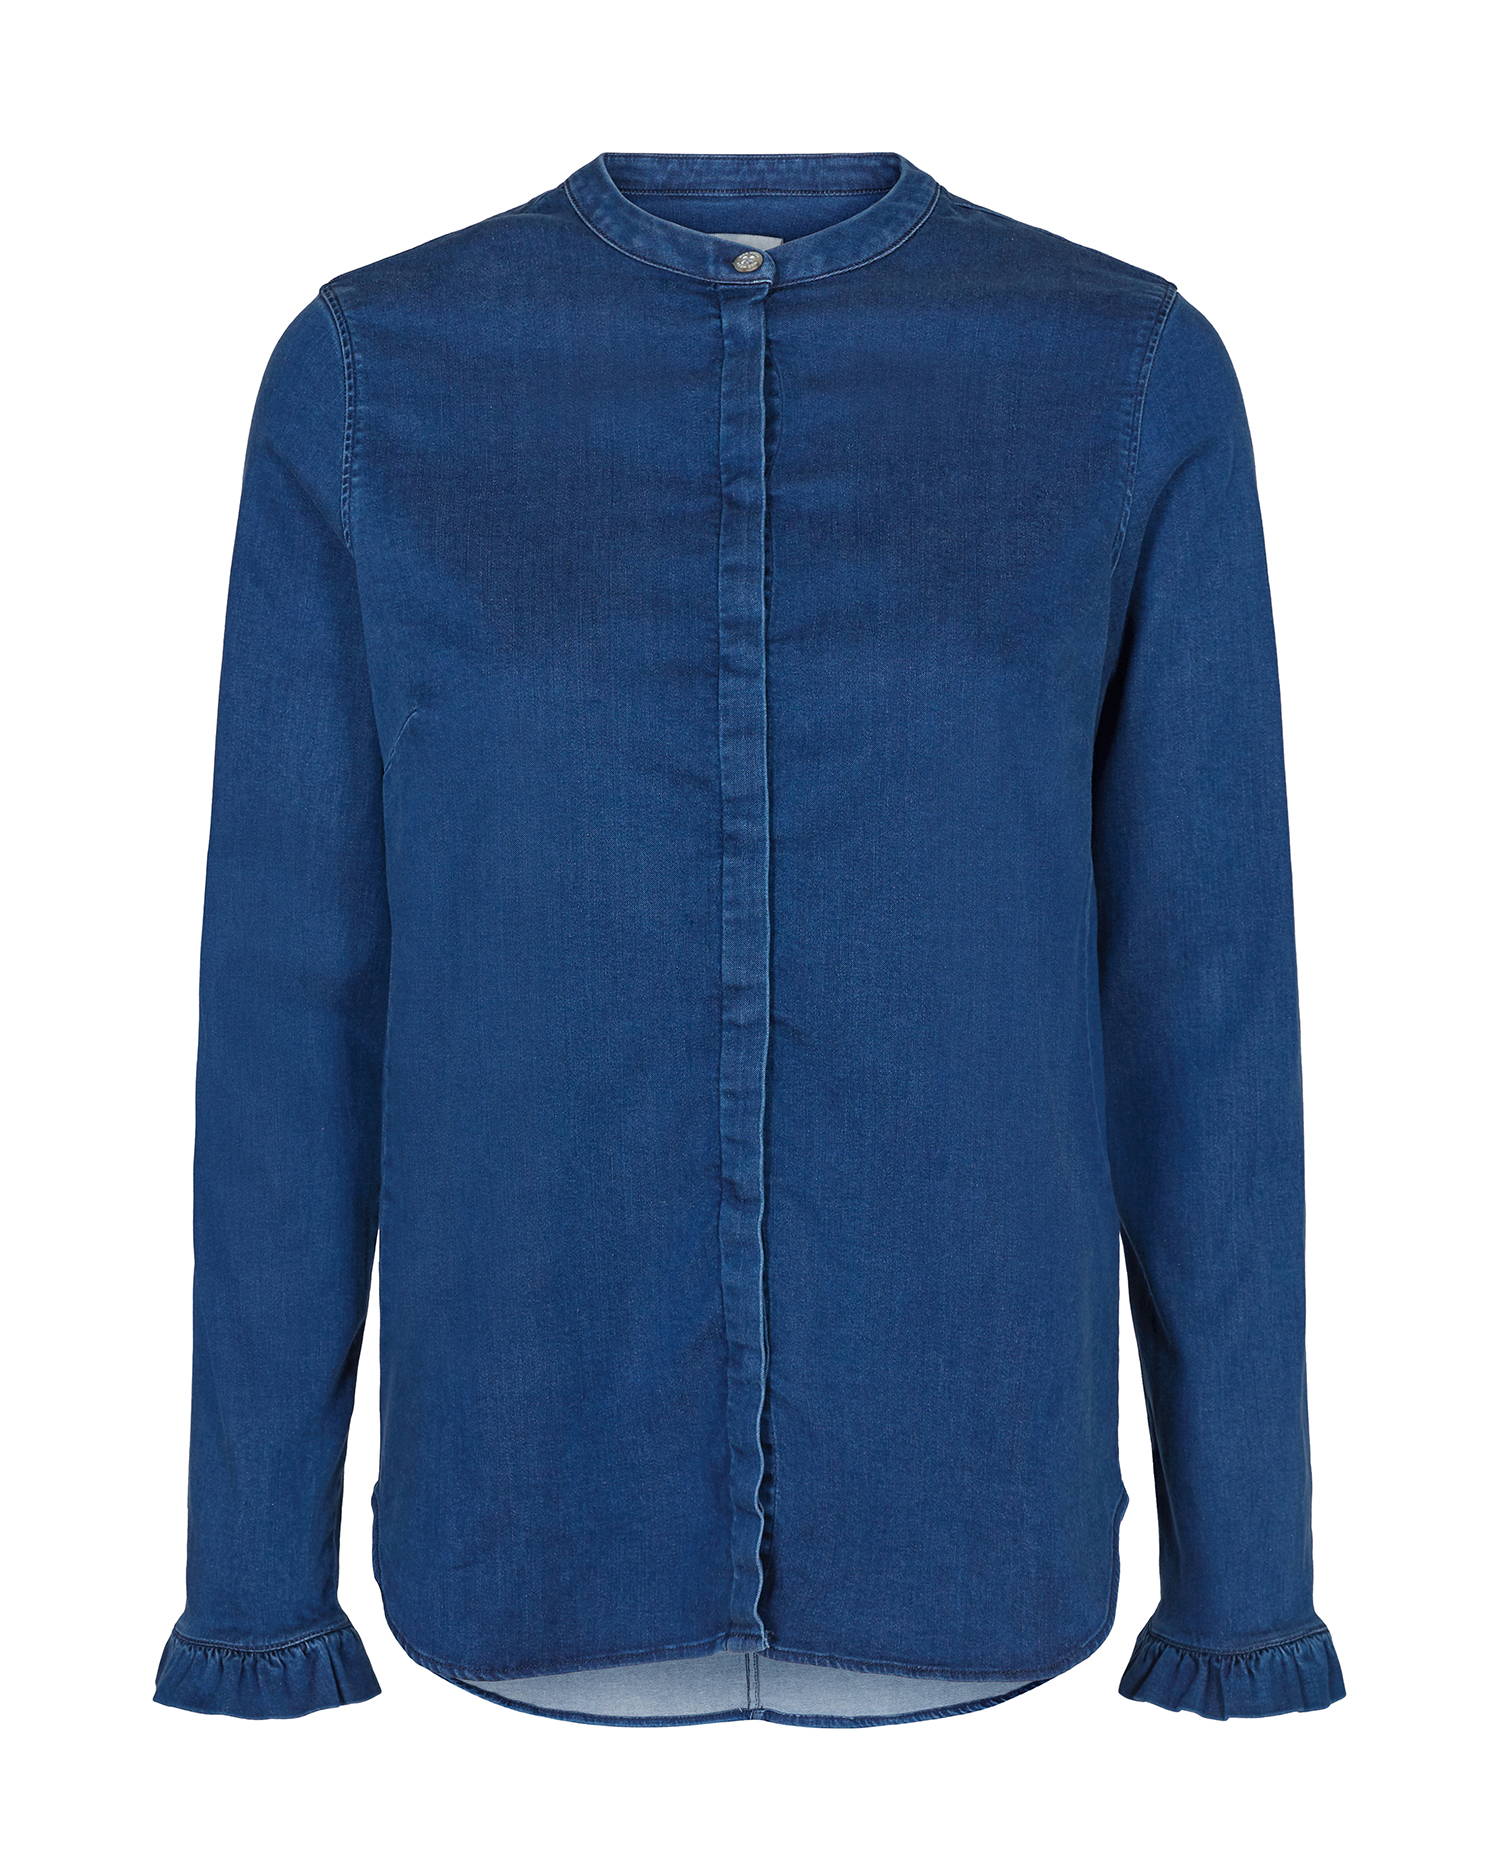 Mattie shirt denim